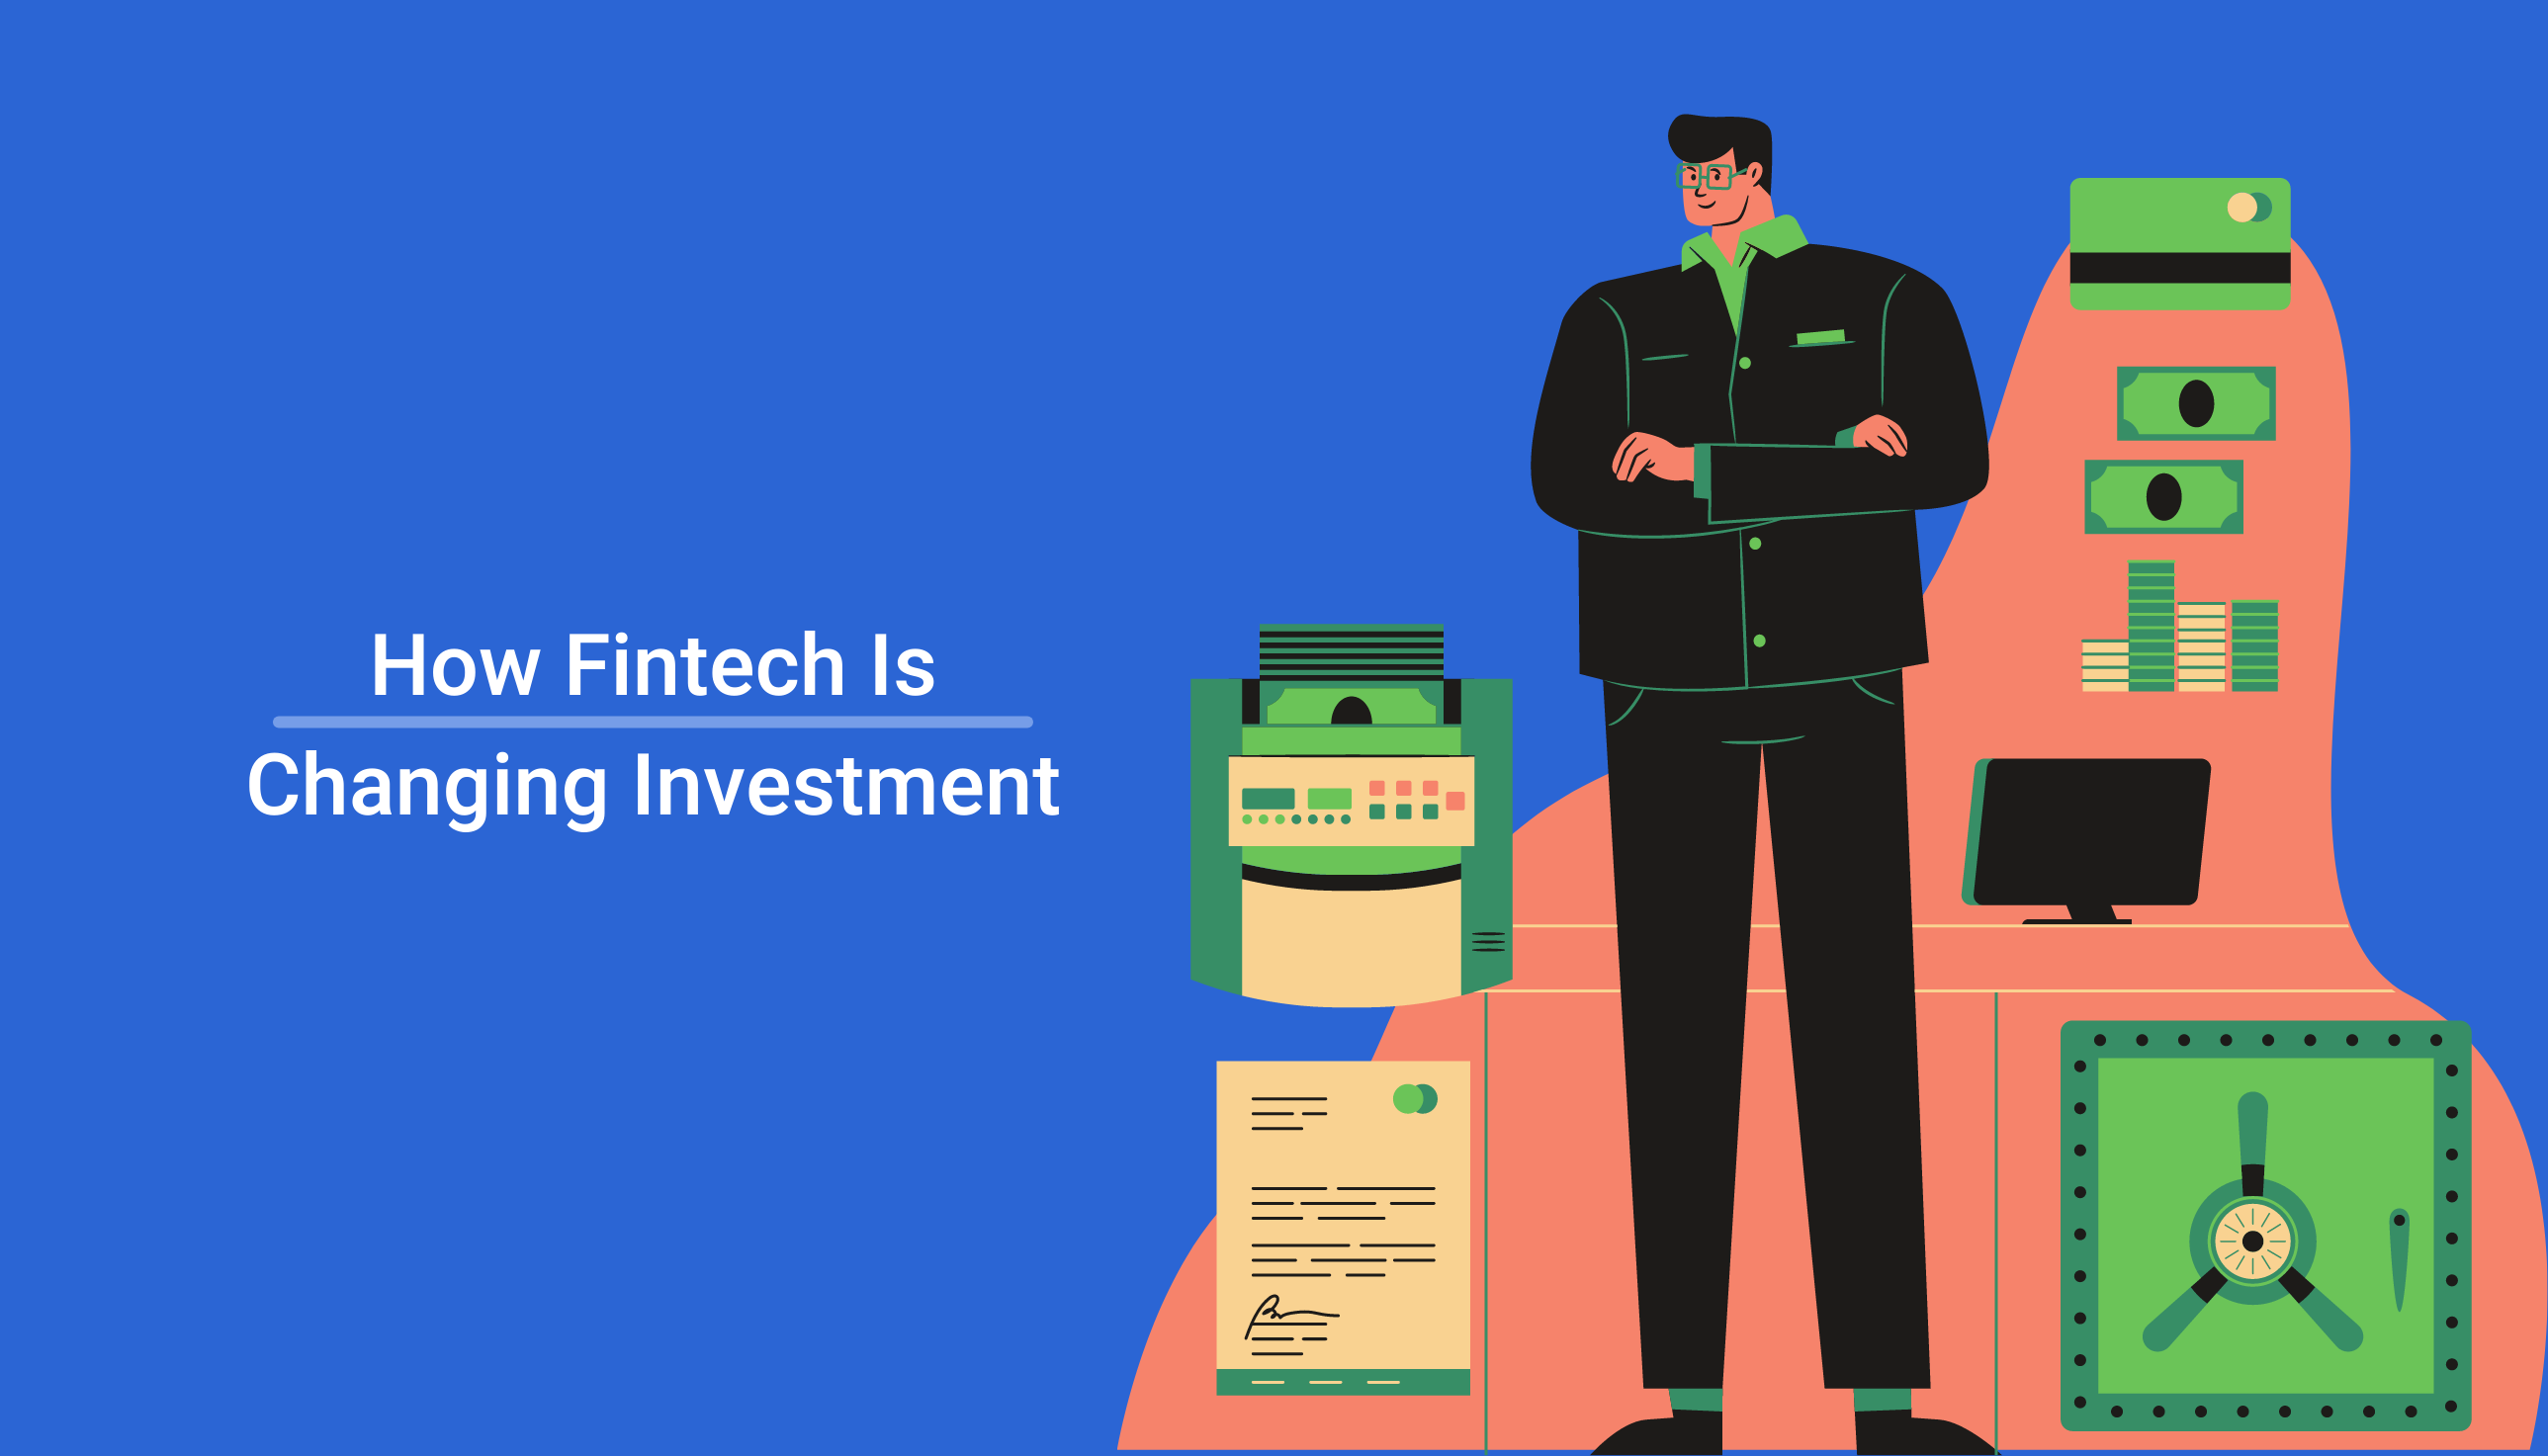 Fintechs are making finance more accessible